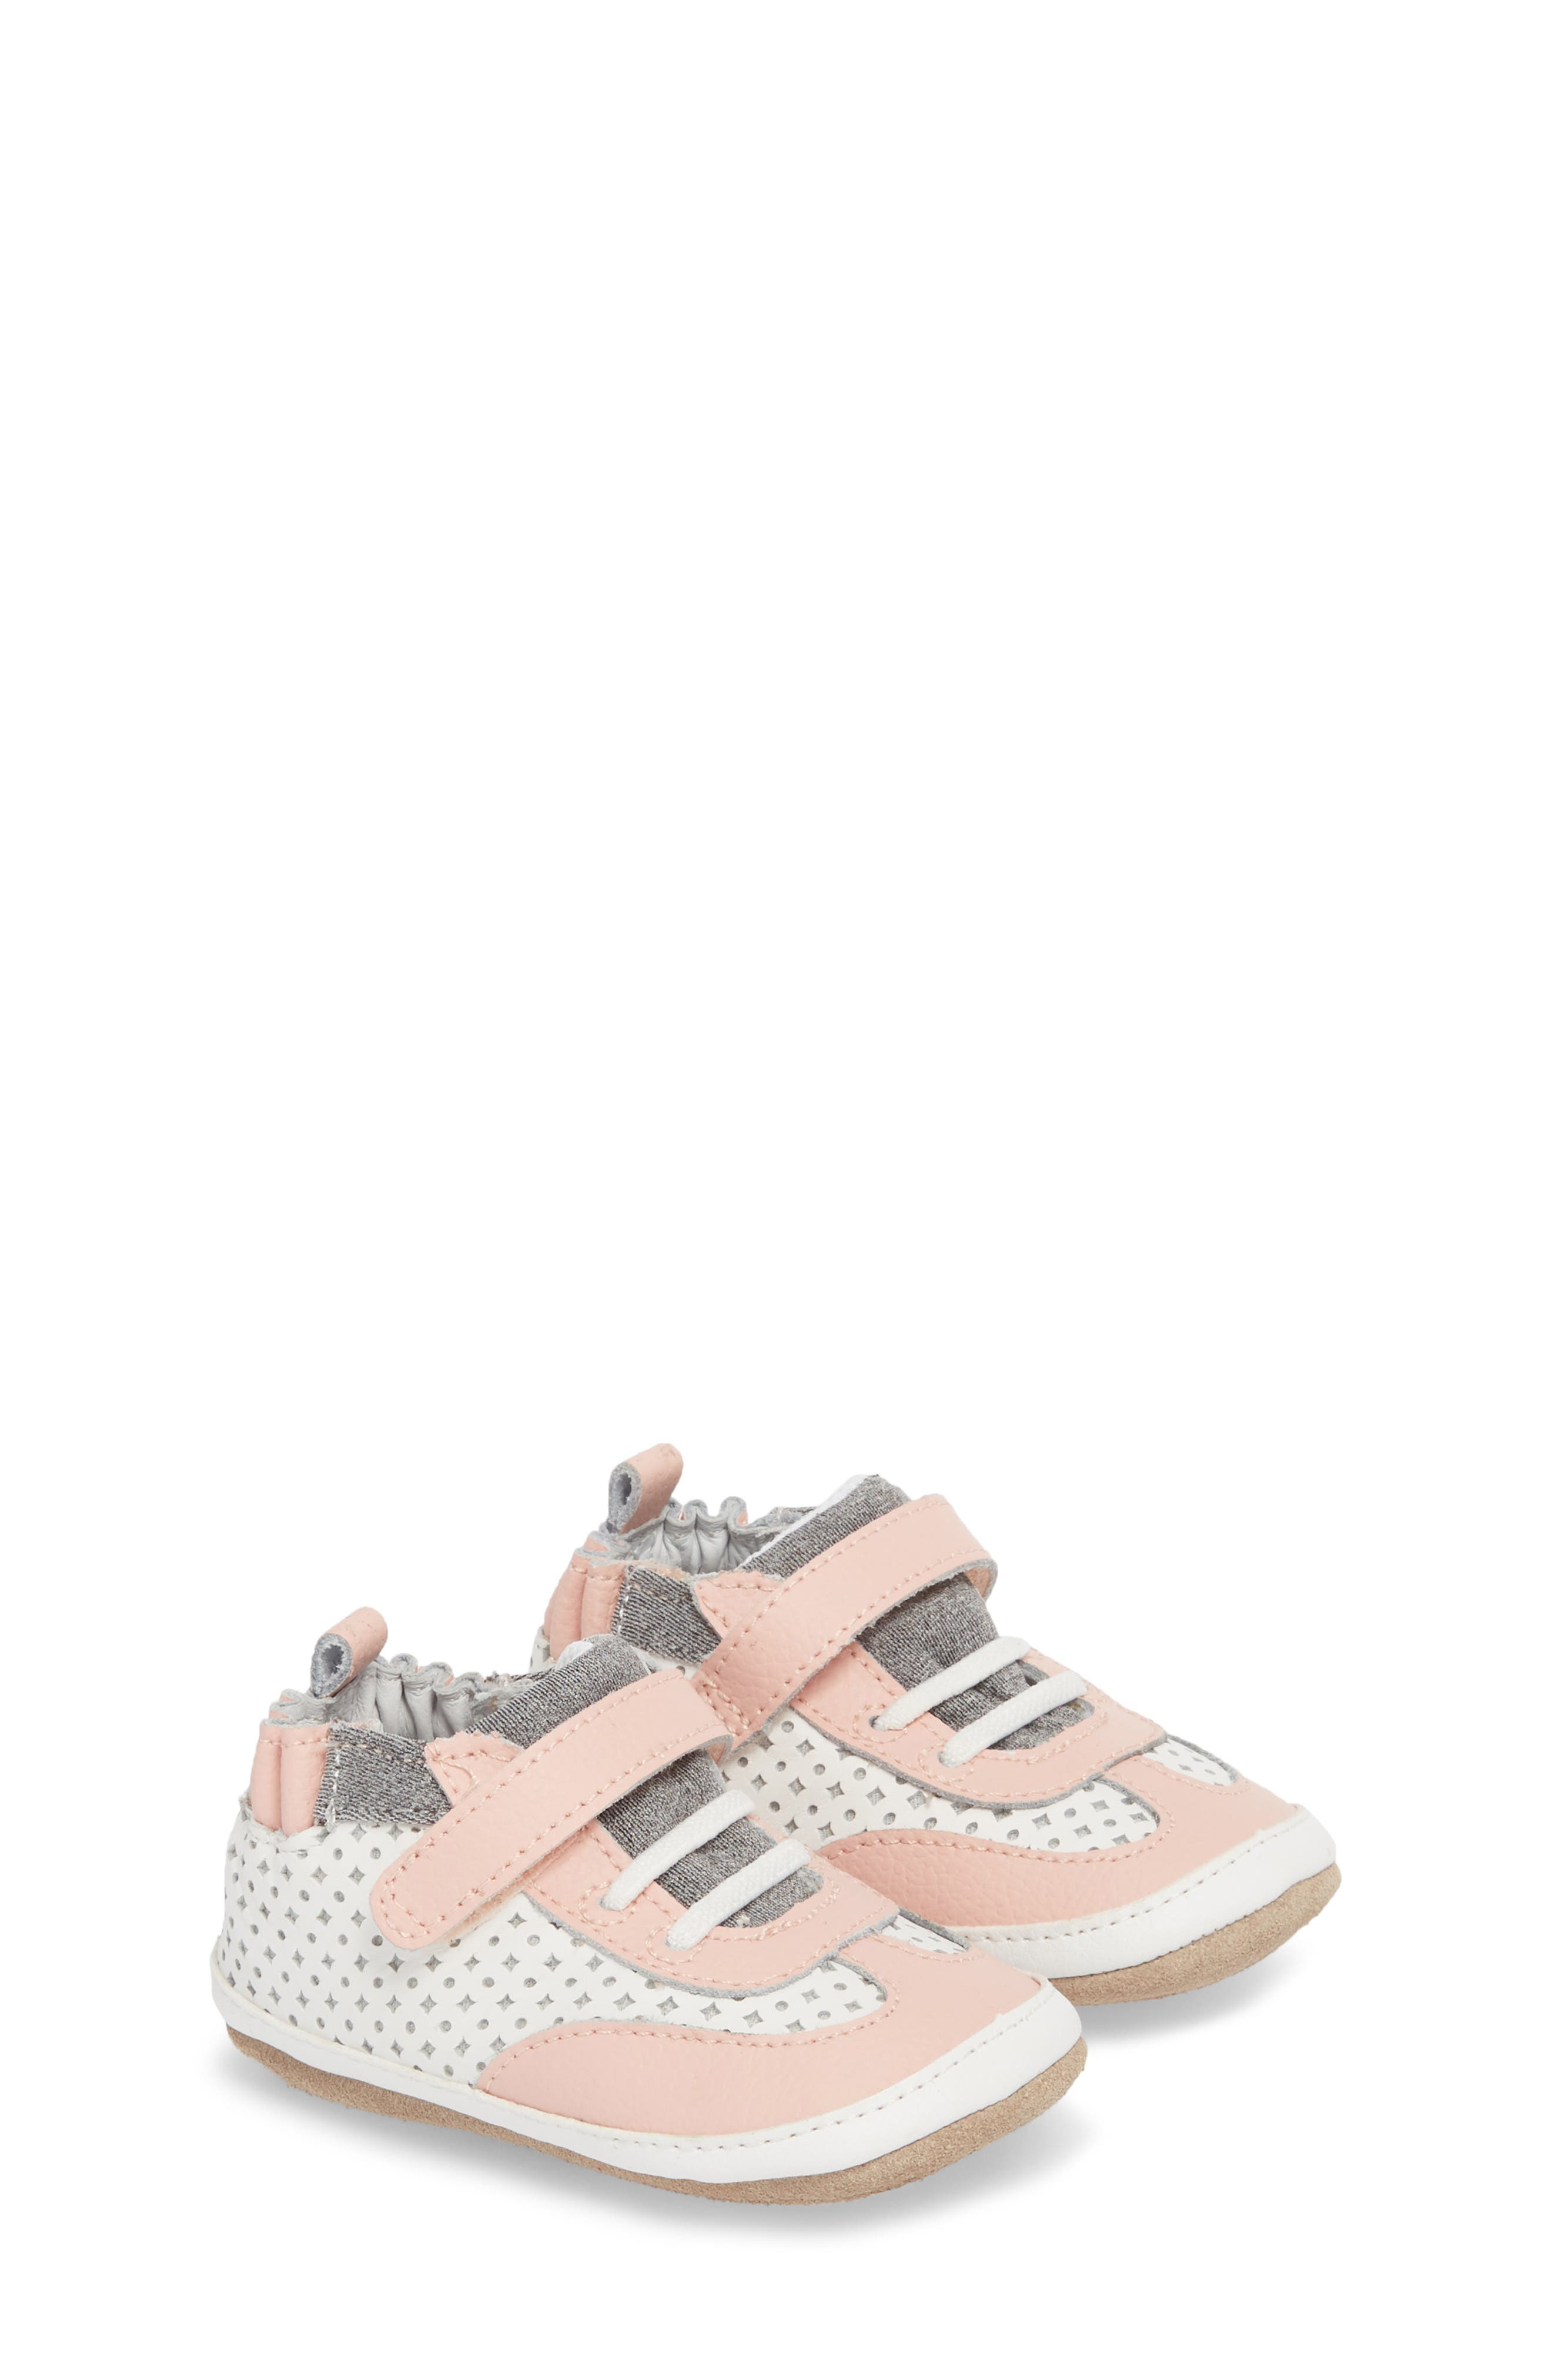 Mini Shoez Katie's Kicks Sneaker,                         Main,                         color, PINK